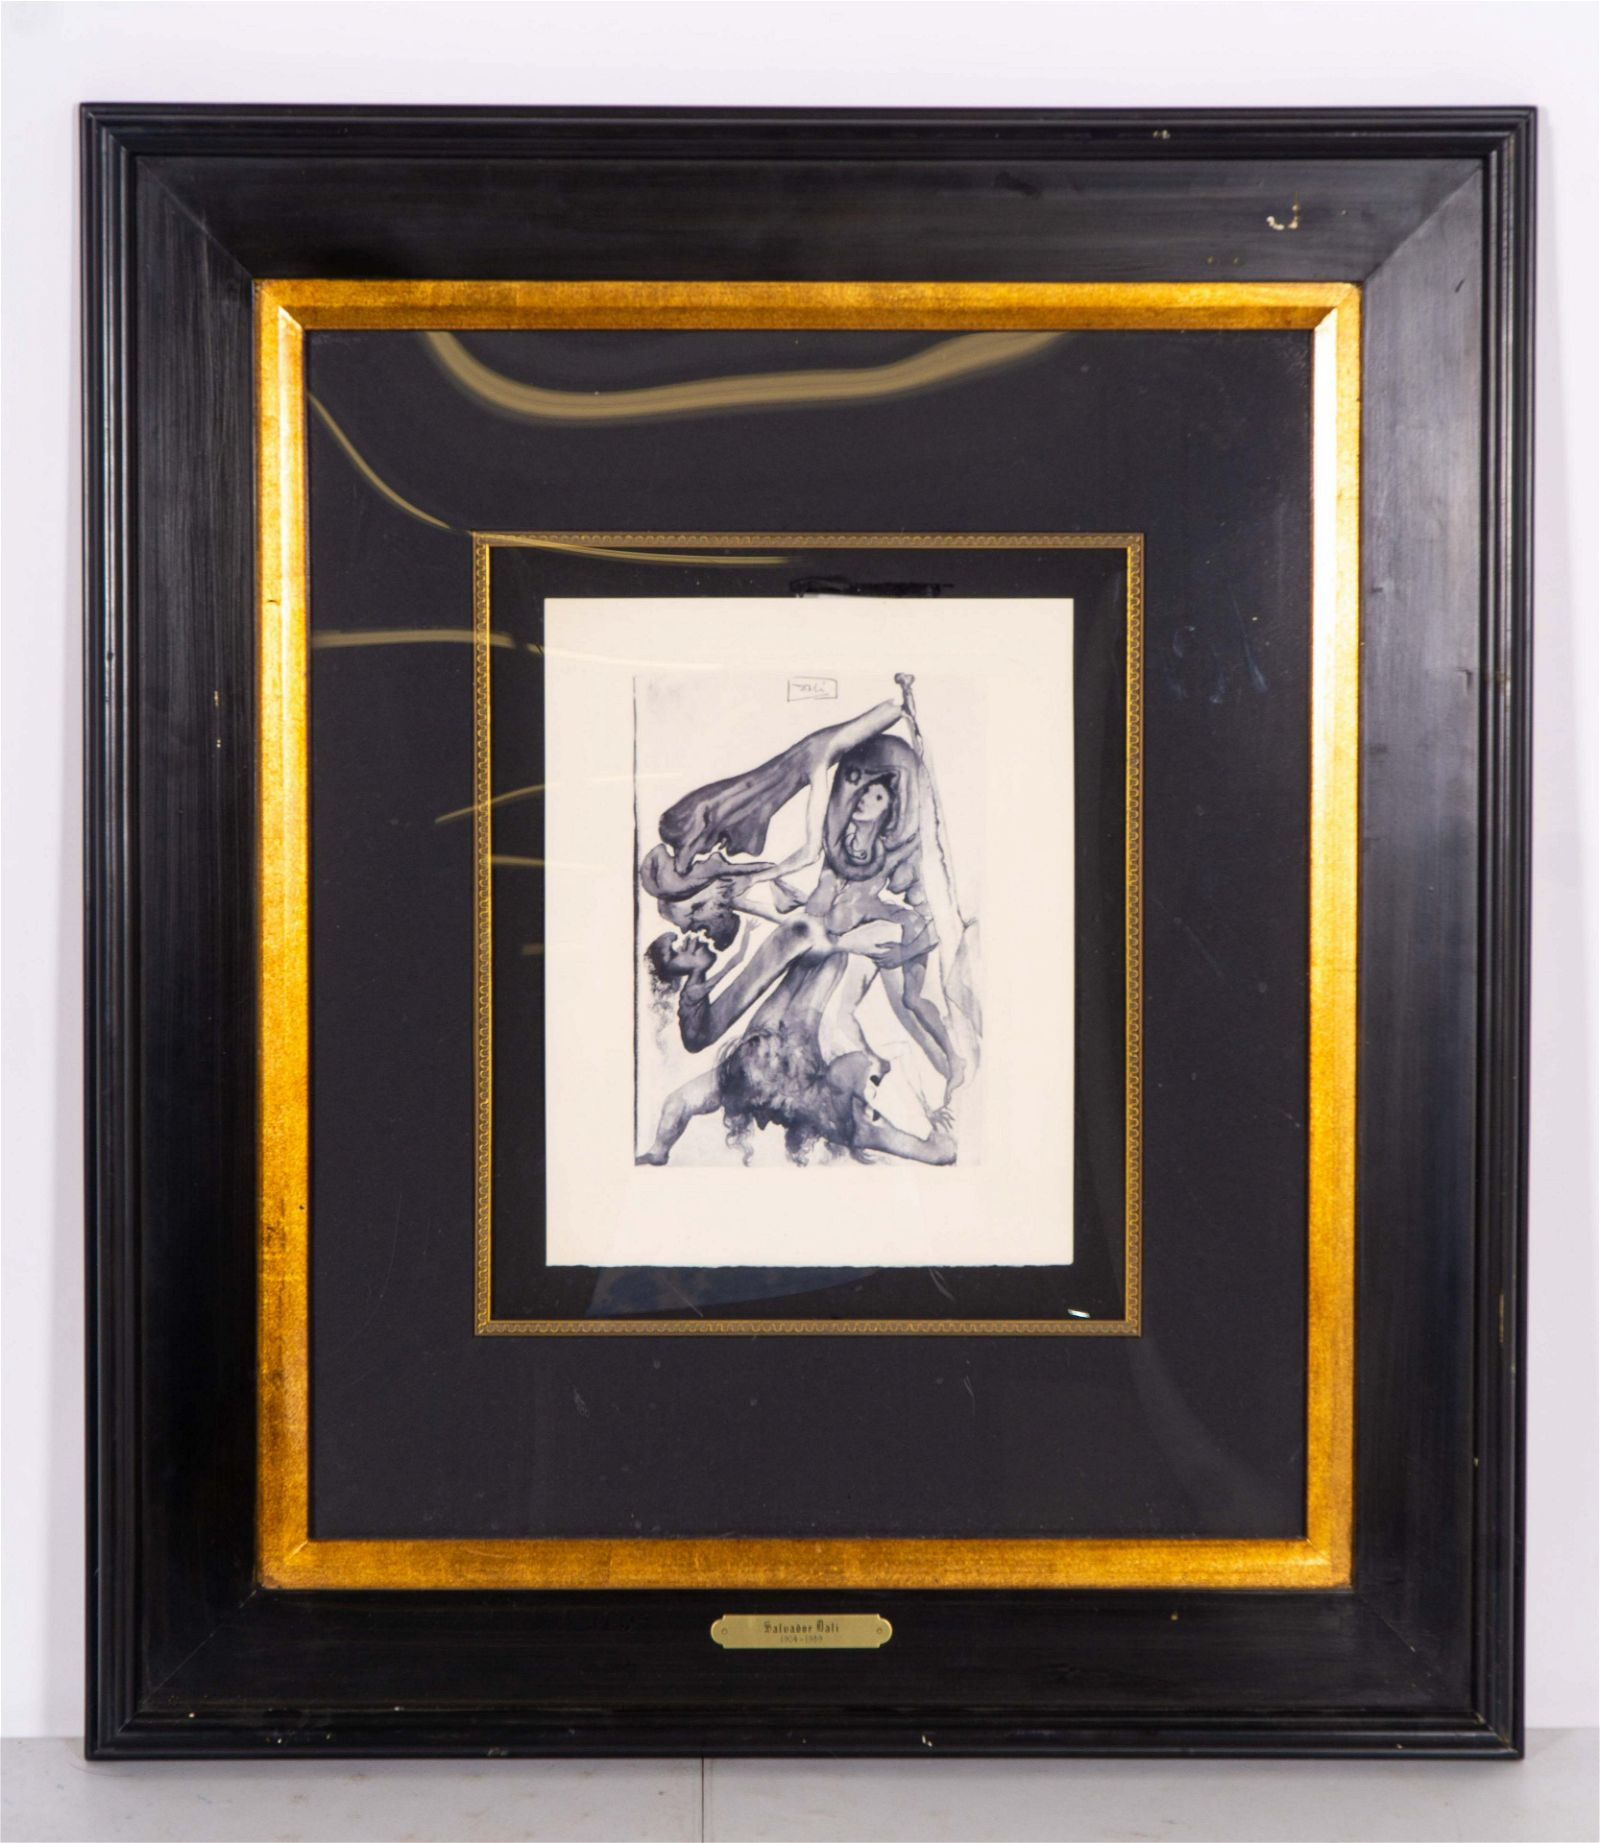 Limited Edition Signed in the Plate Engraving Salvador